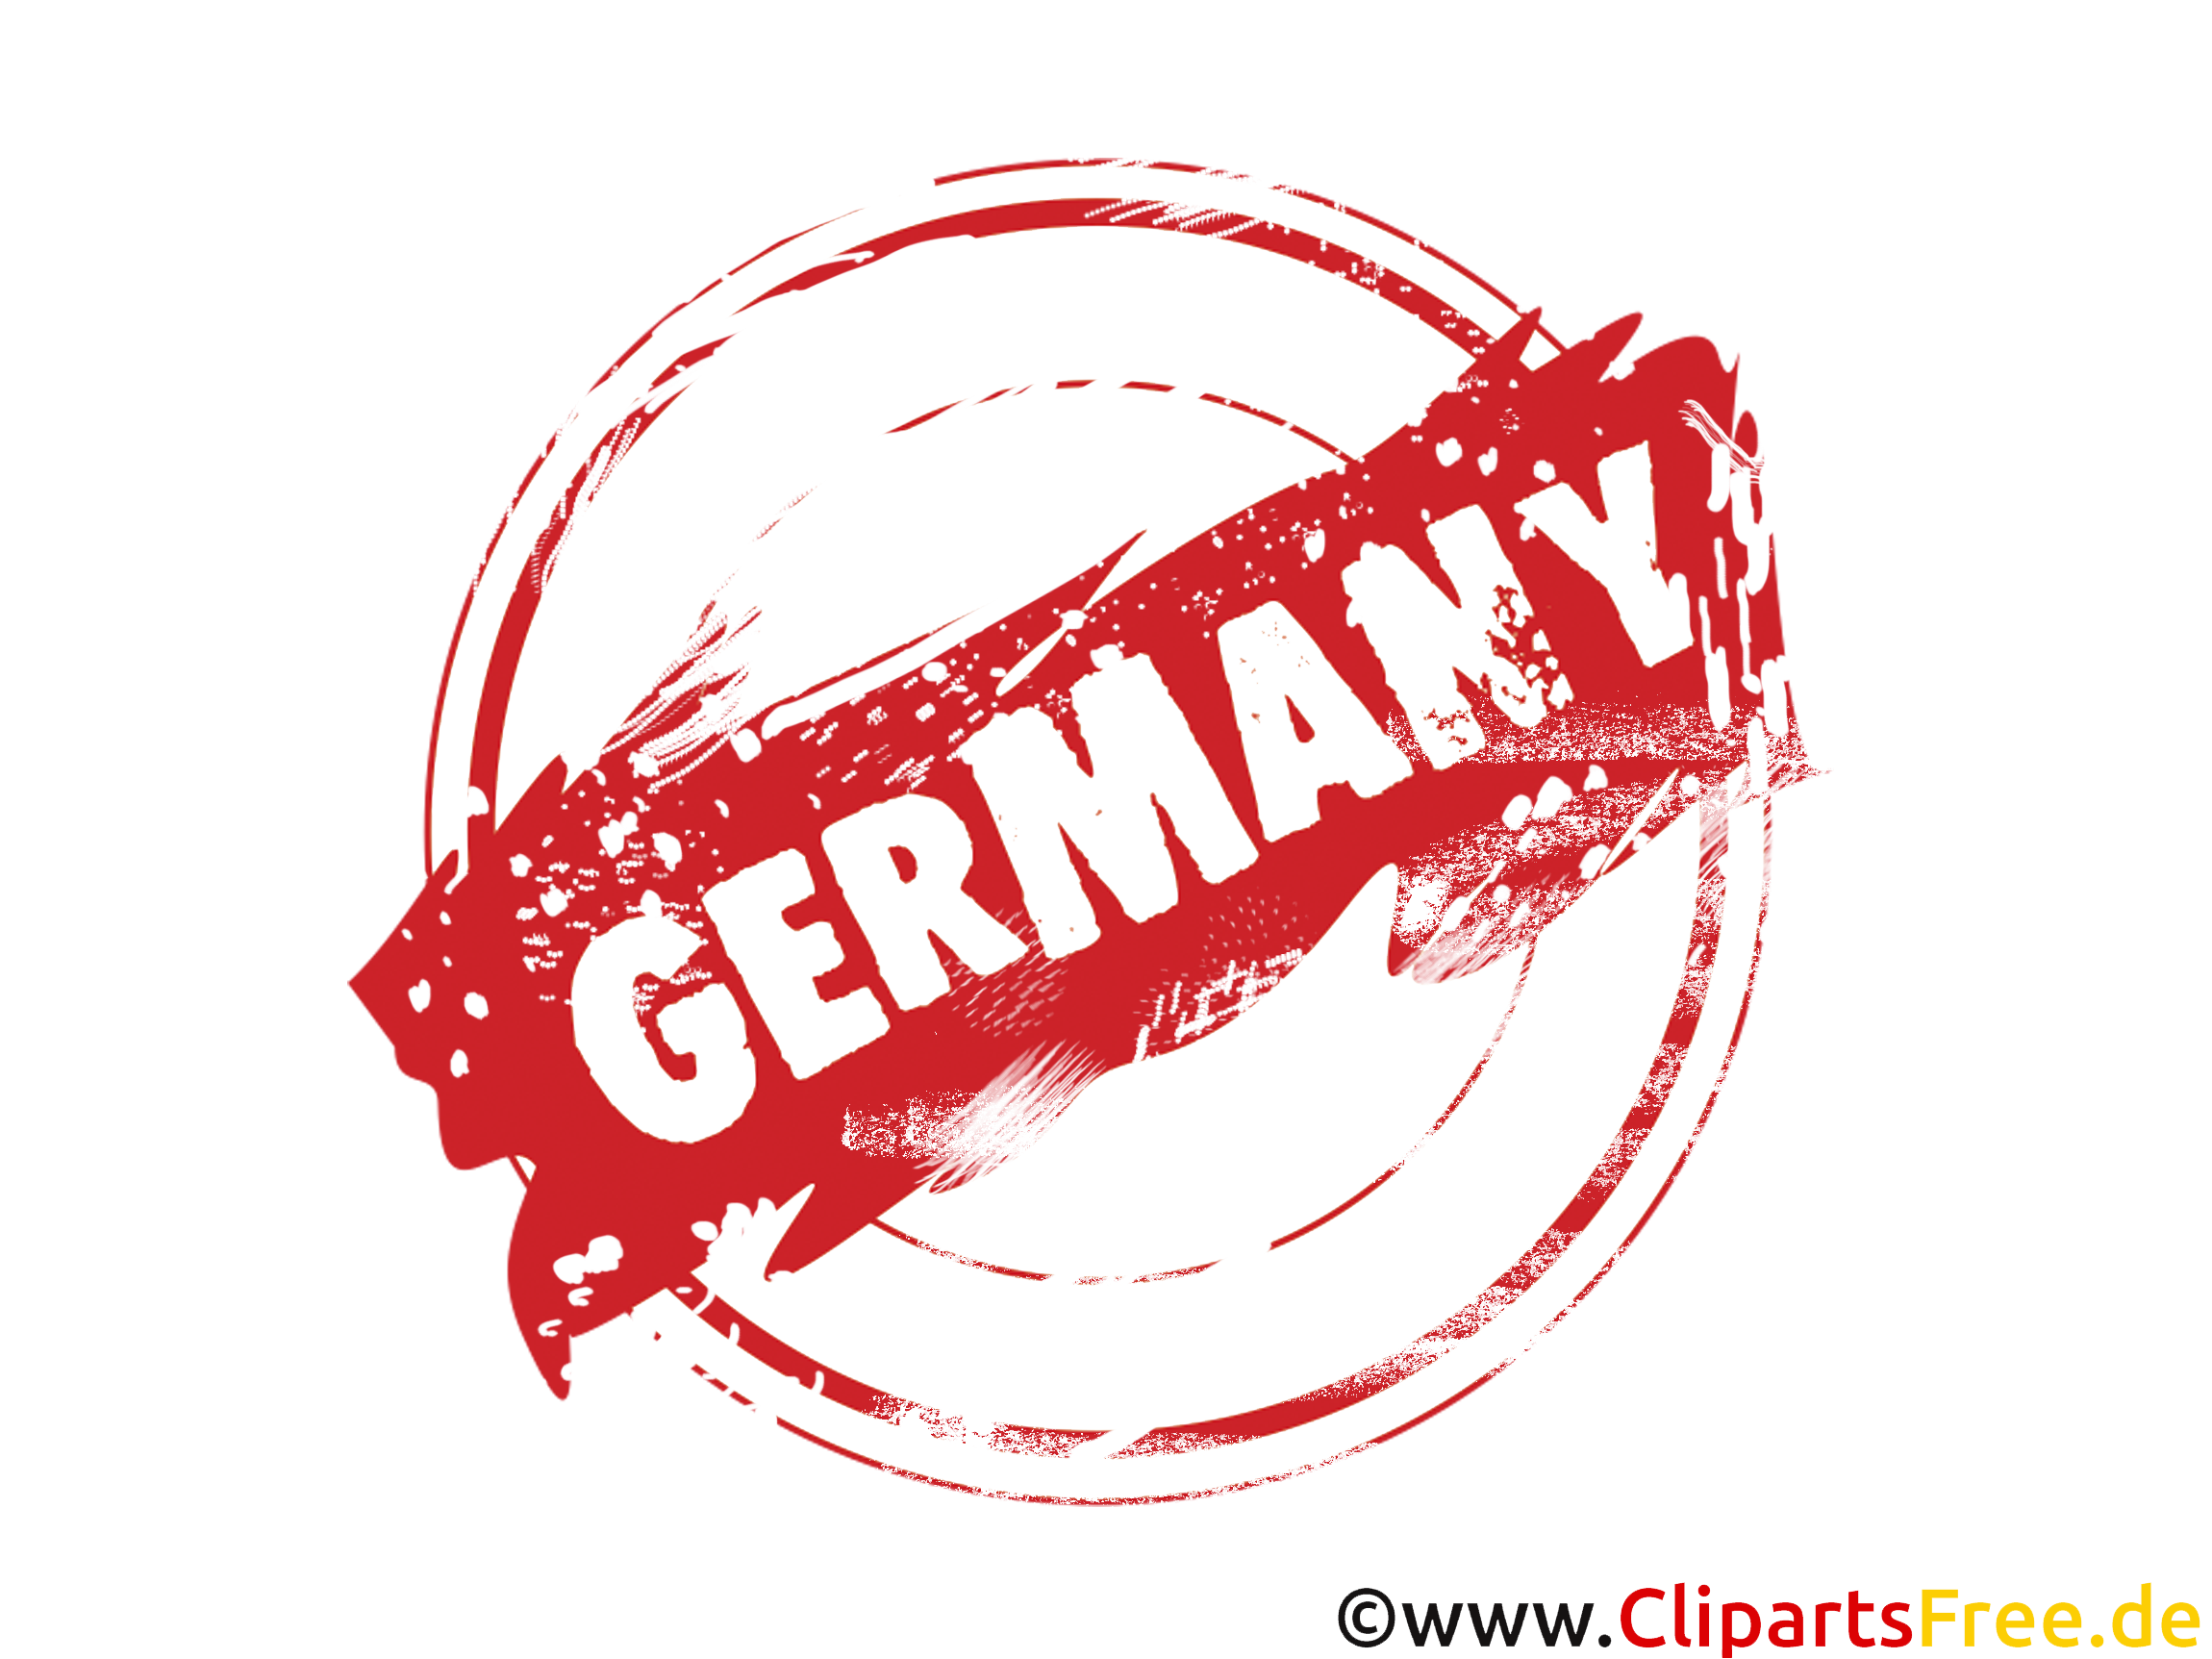 clipart stempel kostenlos germany. Black Bedroom Furniture Sets. Home Design Ideas